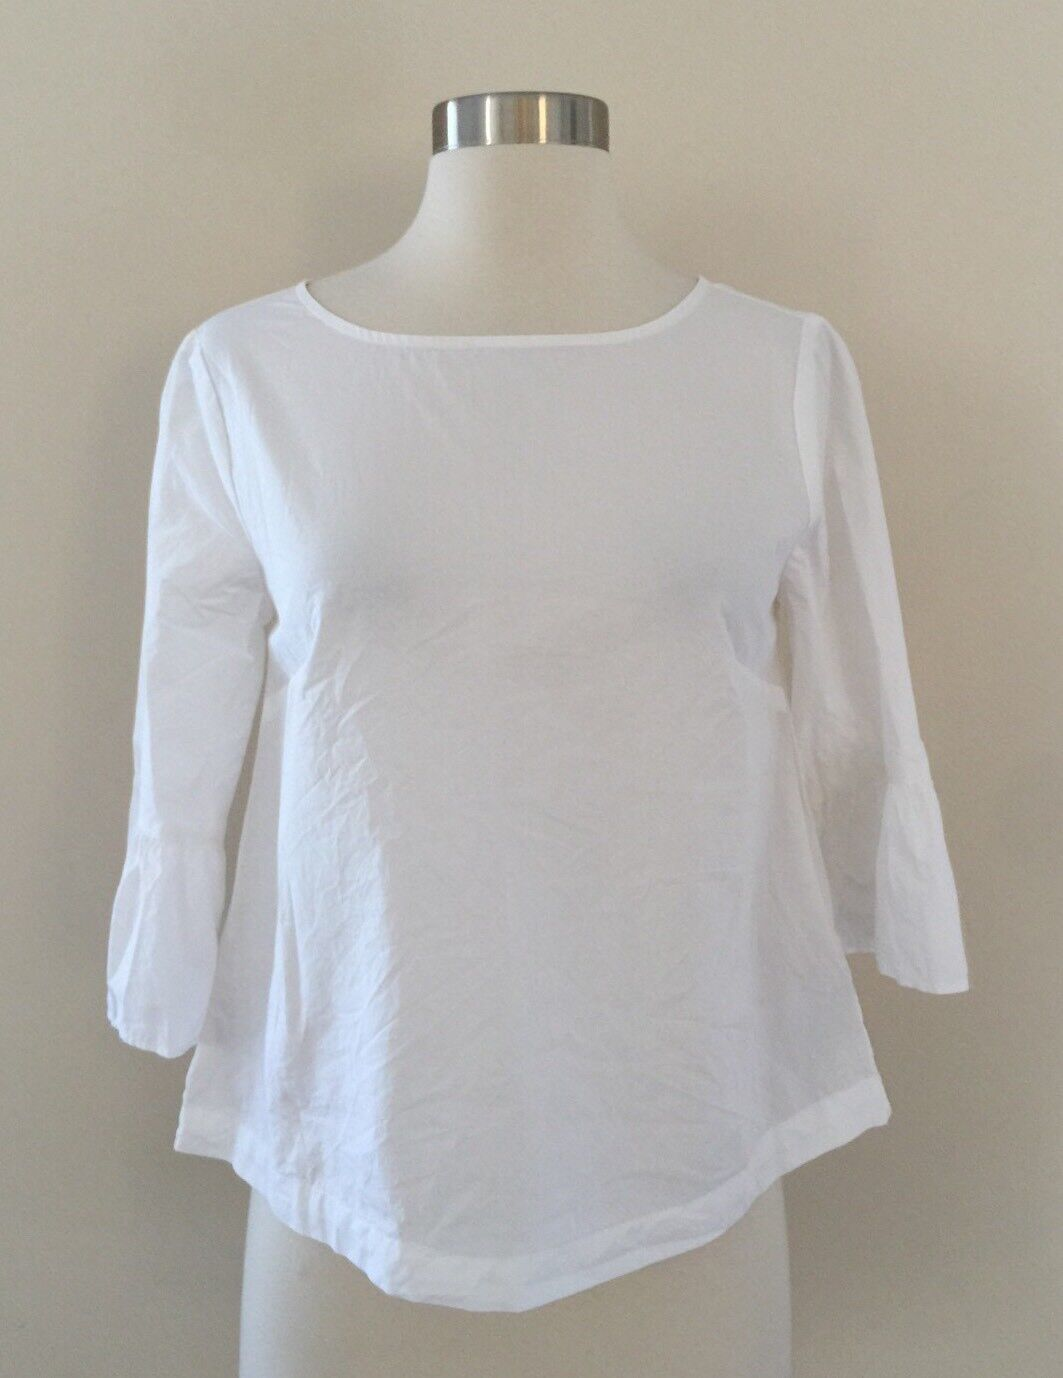 Nwt Madewell  G3233 Bell-Sleeve Popover Shirt Top Weiß Sz XS